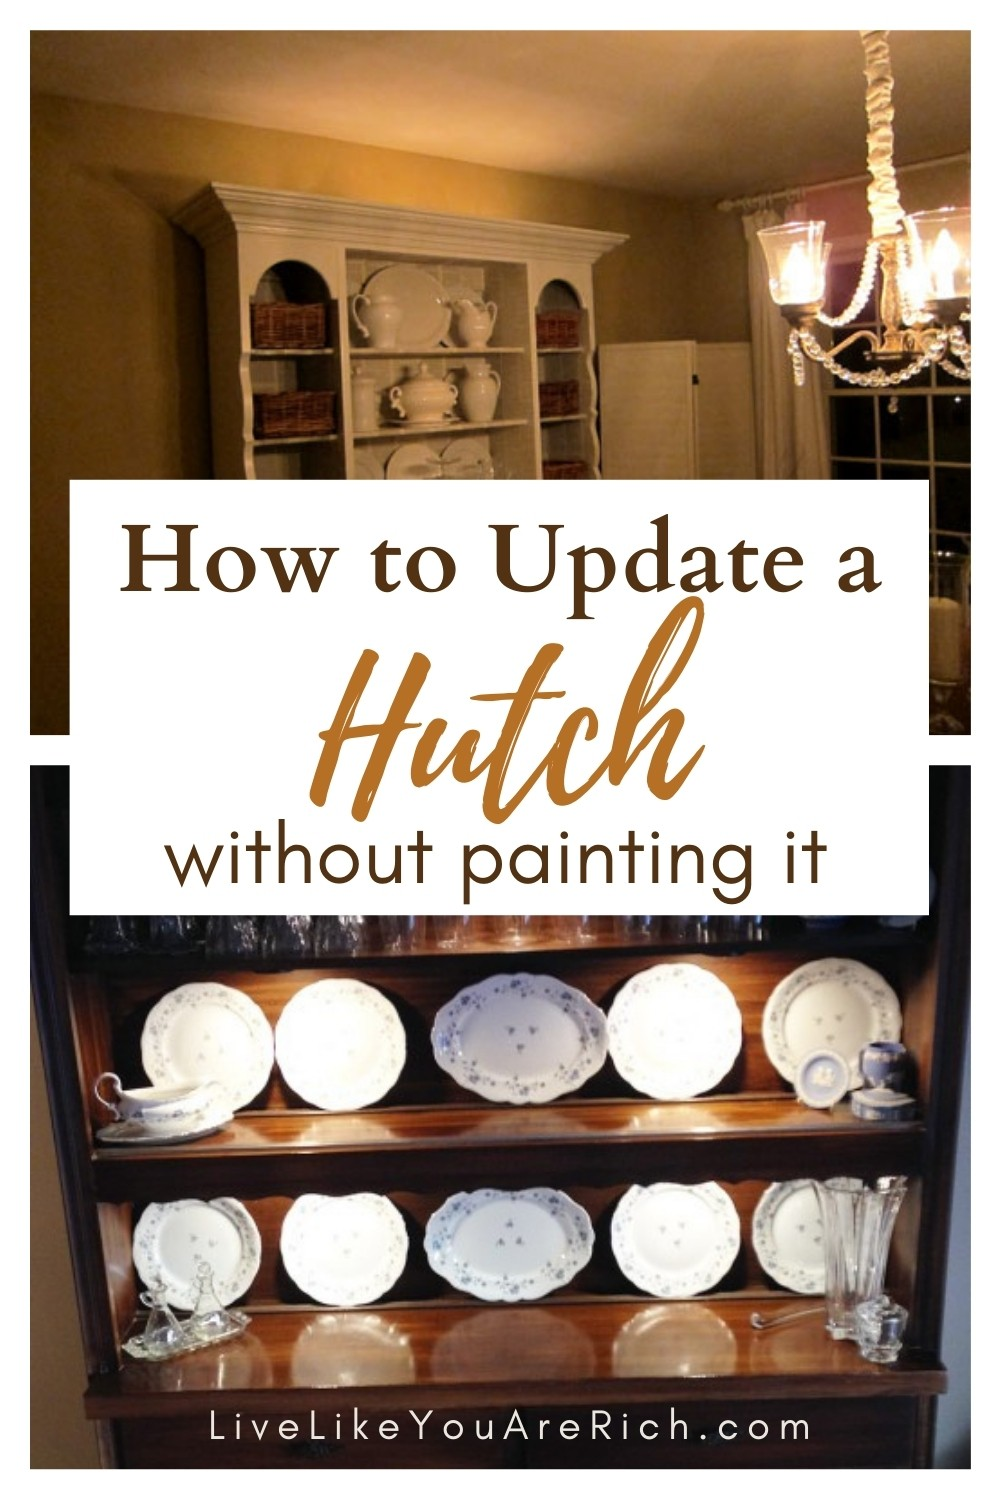 You don't have to painstakingly sand, prime and paint an old hutch in order to update it.My mom has a gorgeous very large hutch. We are renovating her dining room and wanting to update it. Ultimately repainting it was going to be too much work. Plus, it already matched the new hard wood and dining room set, and even the french doors. So we decided to come up with other ways to update it. Here are 9 ways to update a hutch without repainting it. #hutch #makeover